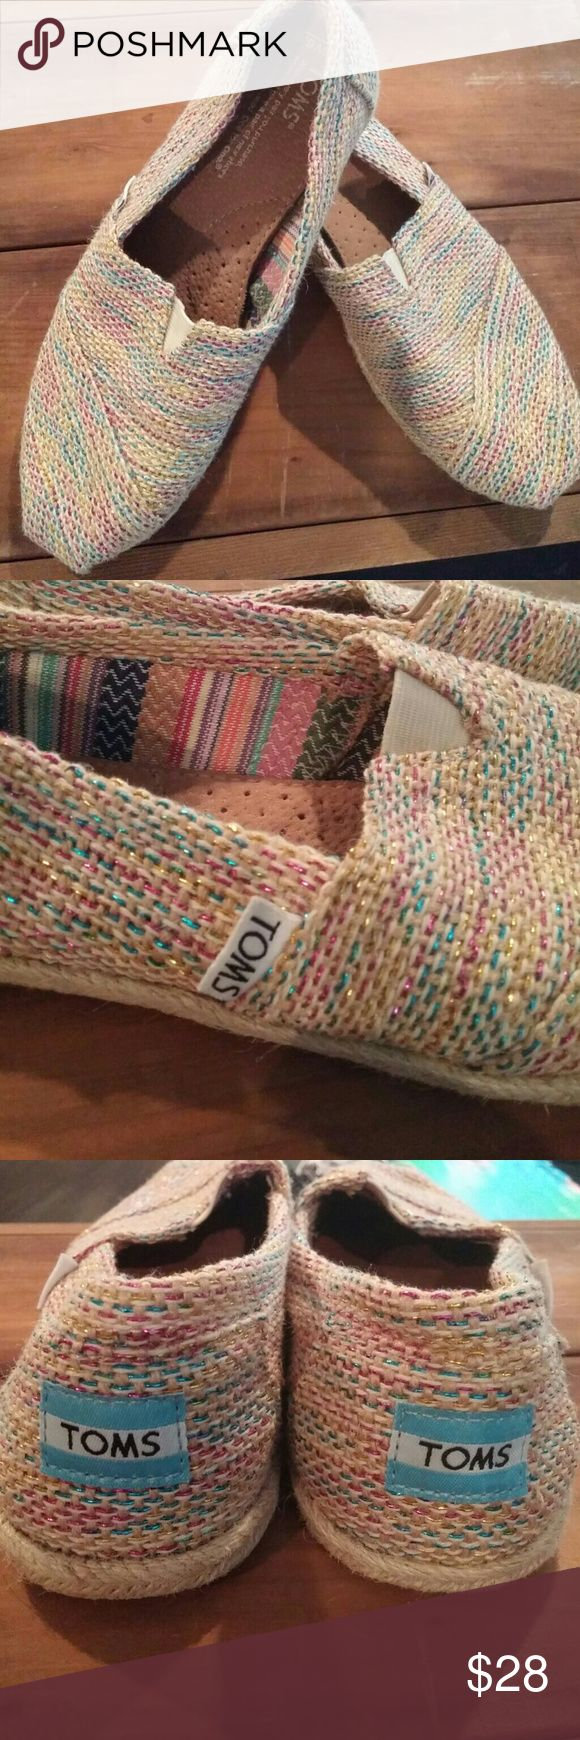 Toms classic slip on shoes Really cute Toms slip on shoes. Tan with Multi color stitches. Like new with the little wrar on the bottom. Insole perfectly clean. Toms Shoes Flats & Loafers